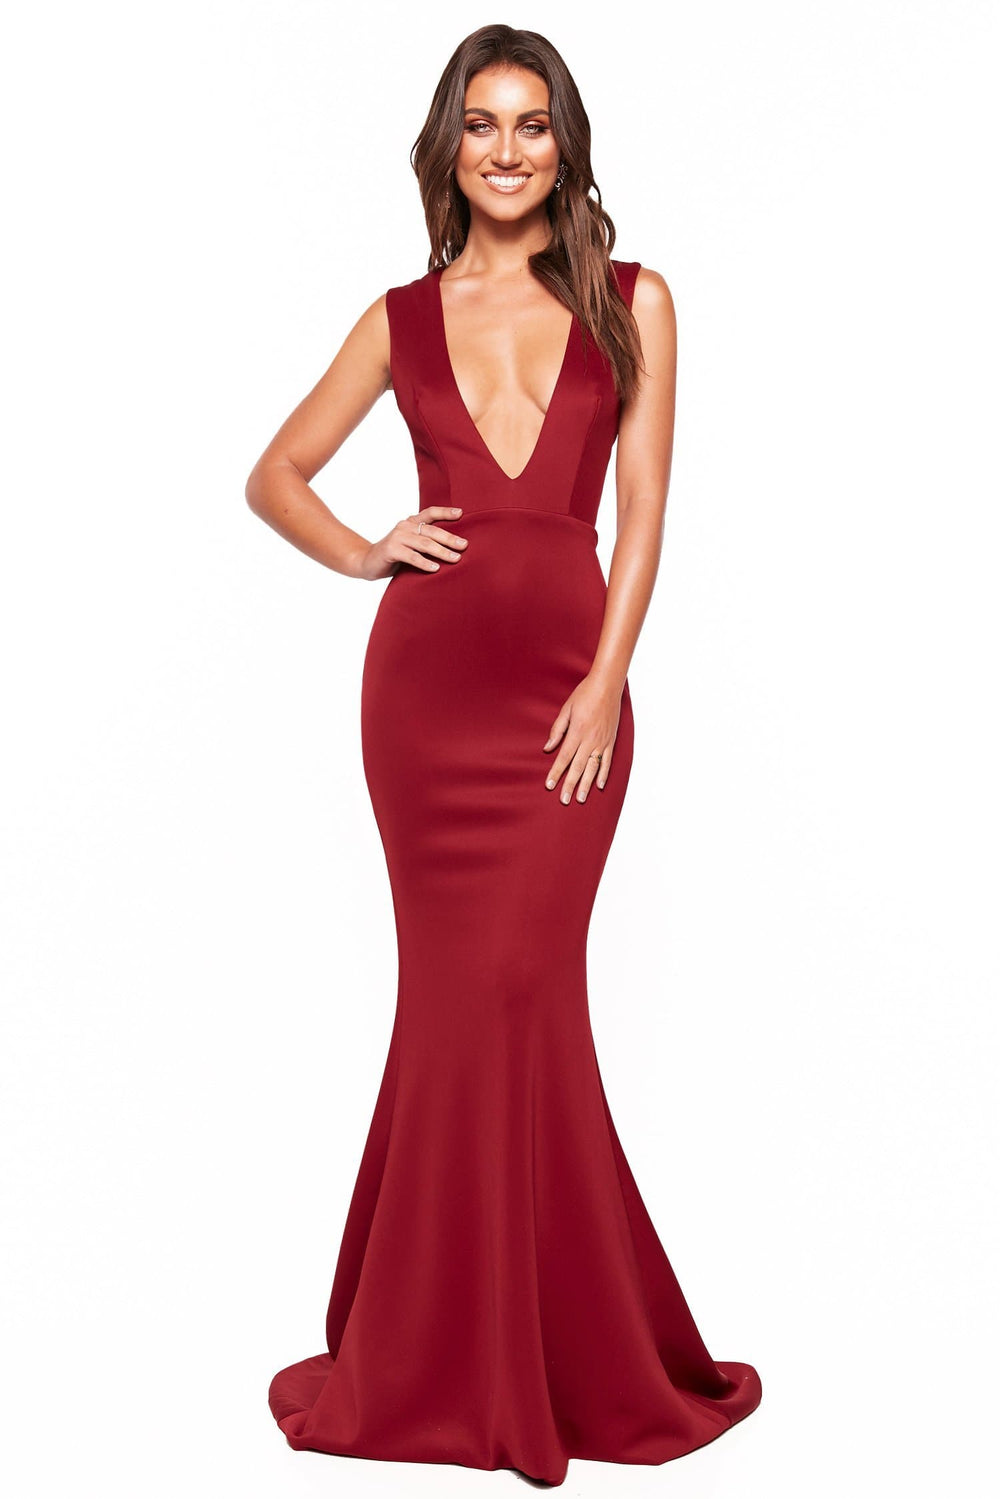 A&N Luxe Scarlett - Burgundy Ponti Gown with Plunge Neck & Back Detail